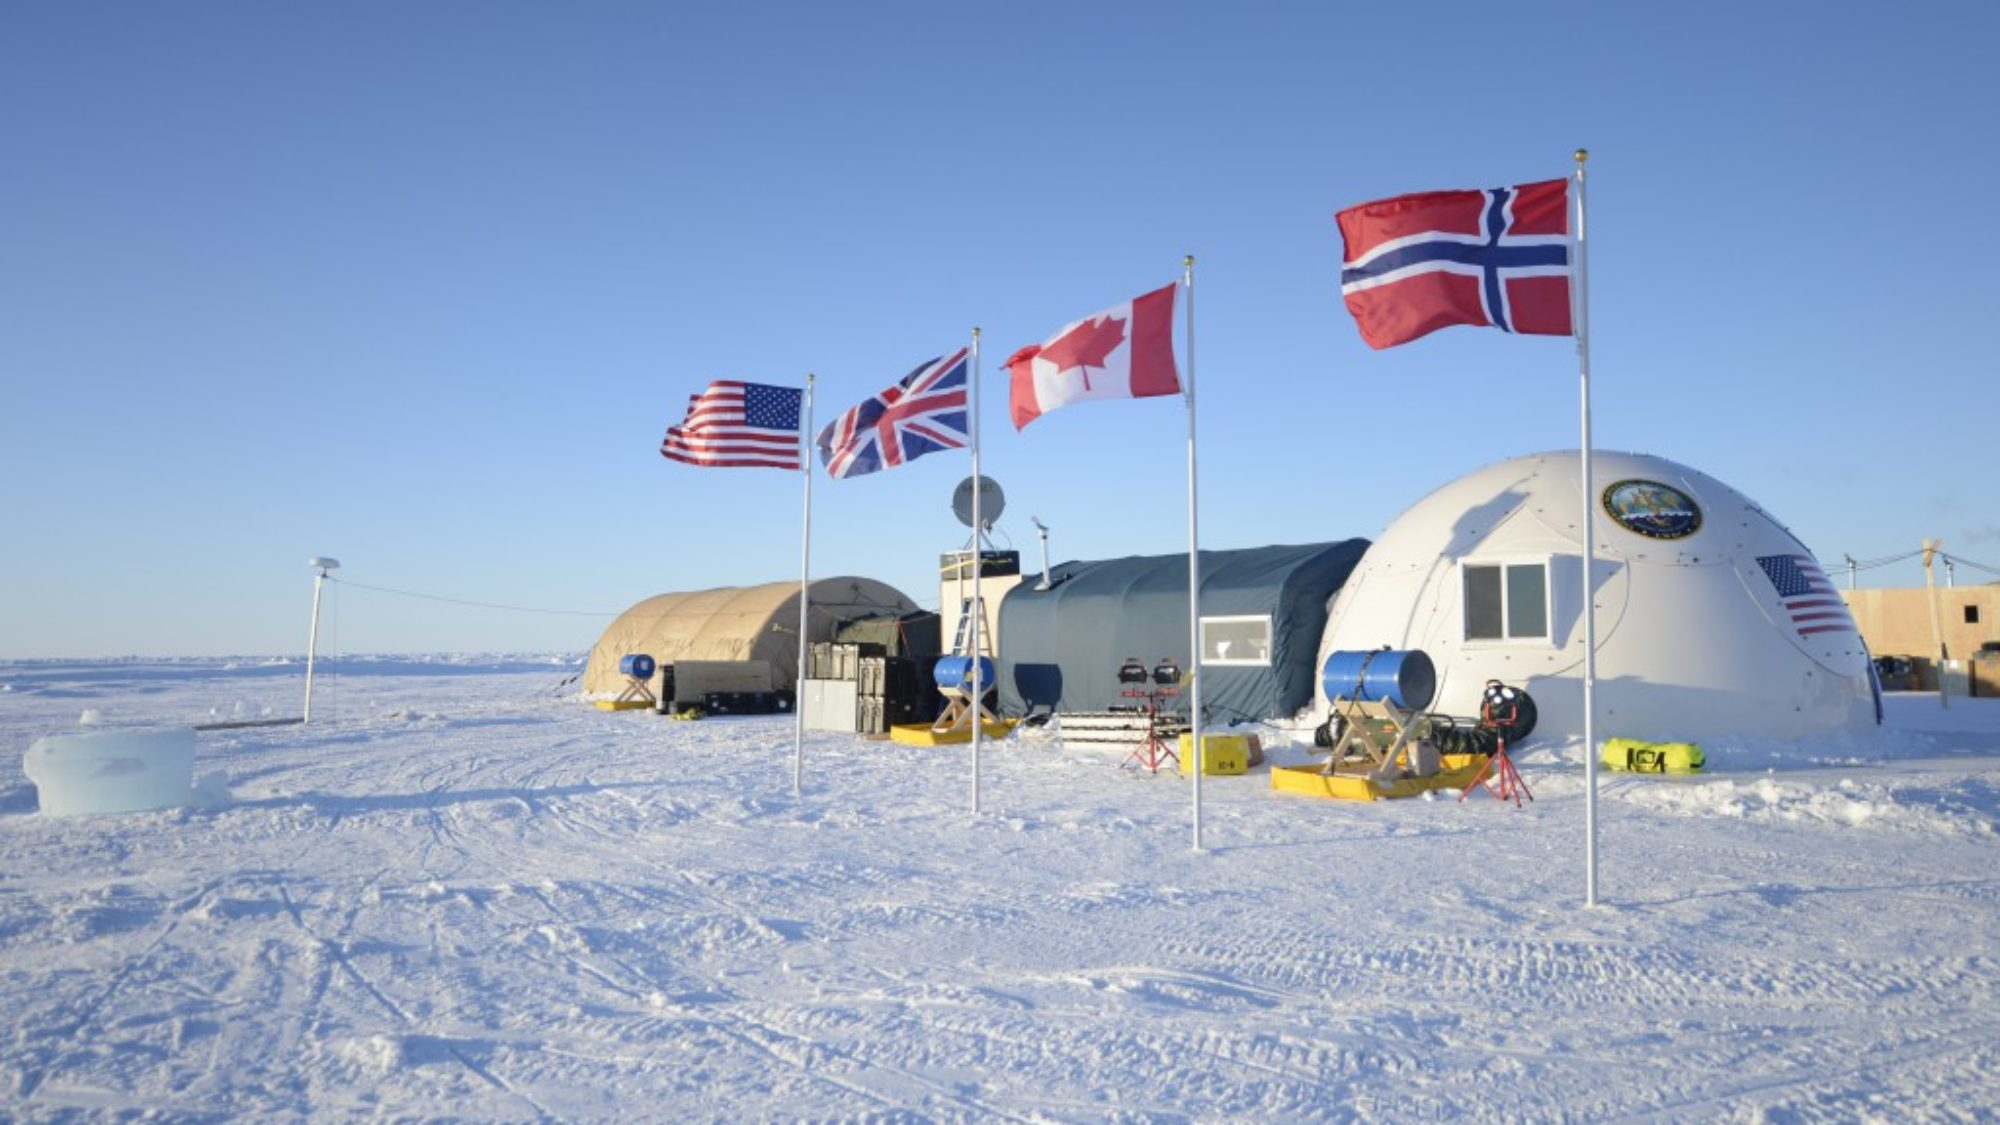 The flags of the U.S., the UK, Norway, and Canada are planted next to each other in the ice outside of a research station in the Arctic.